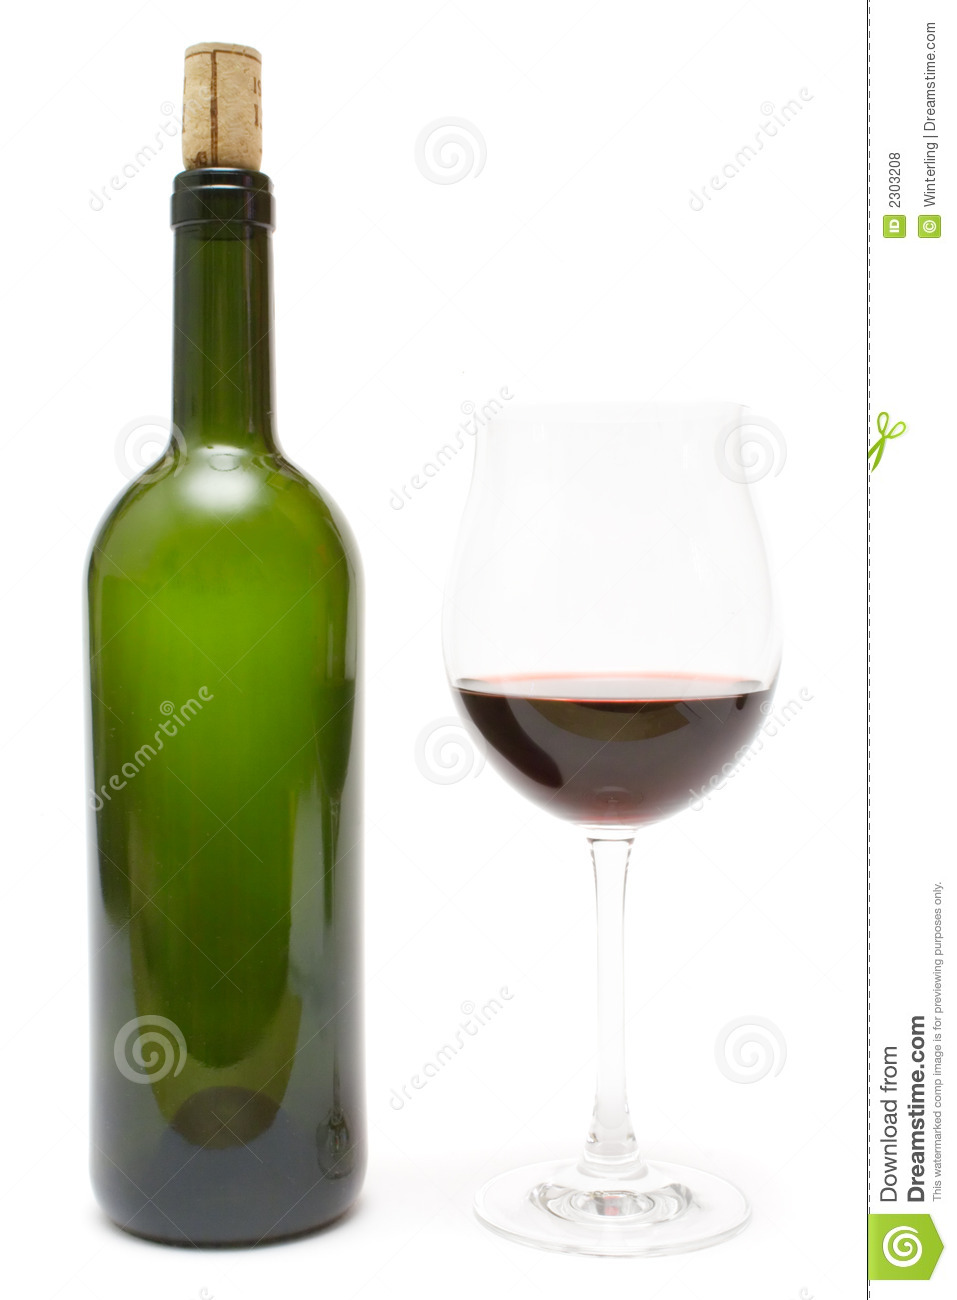 Having a Glass of Wine